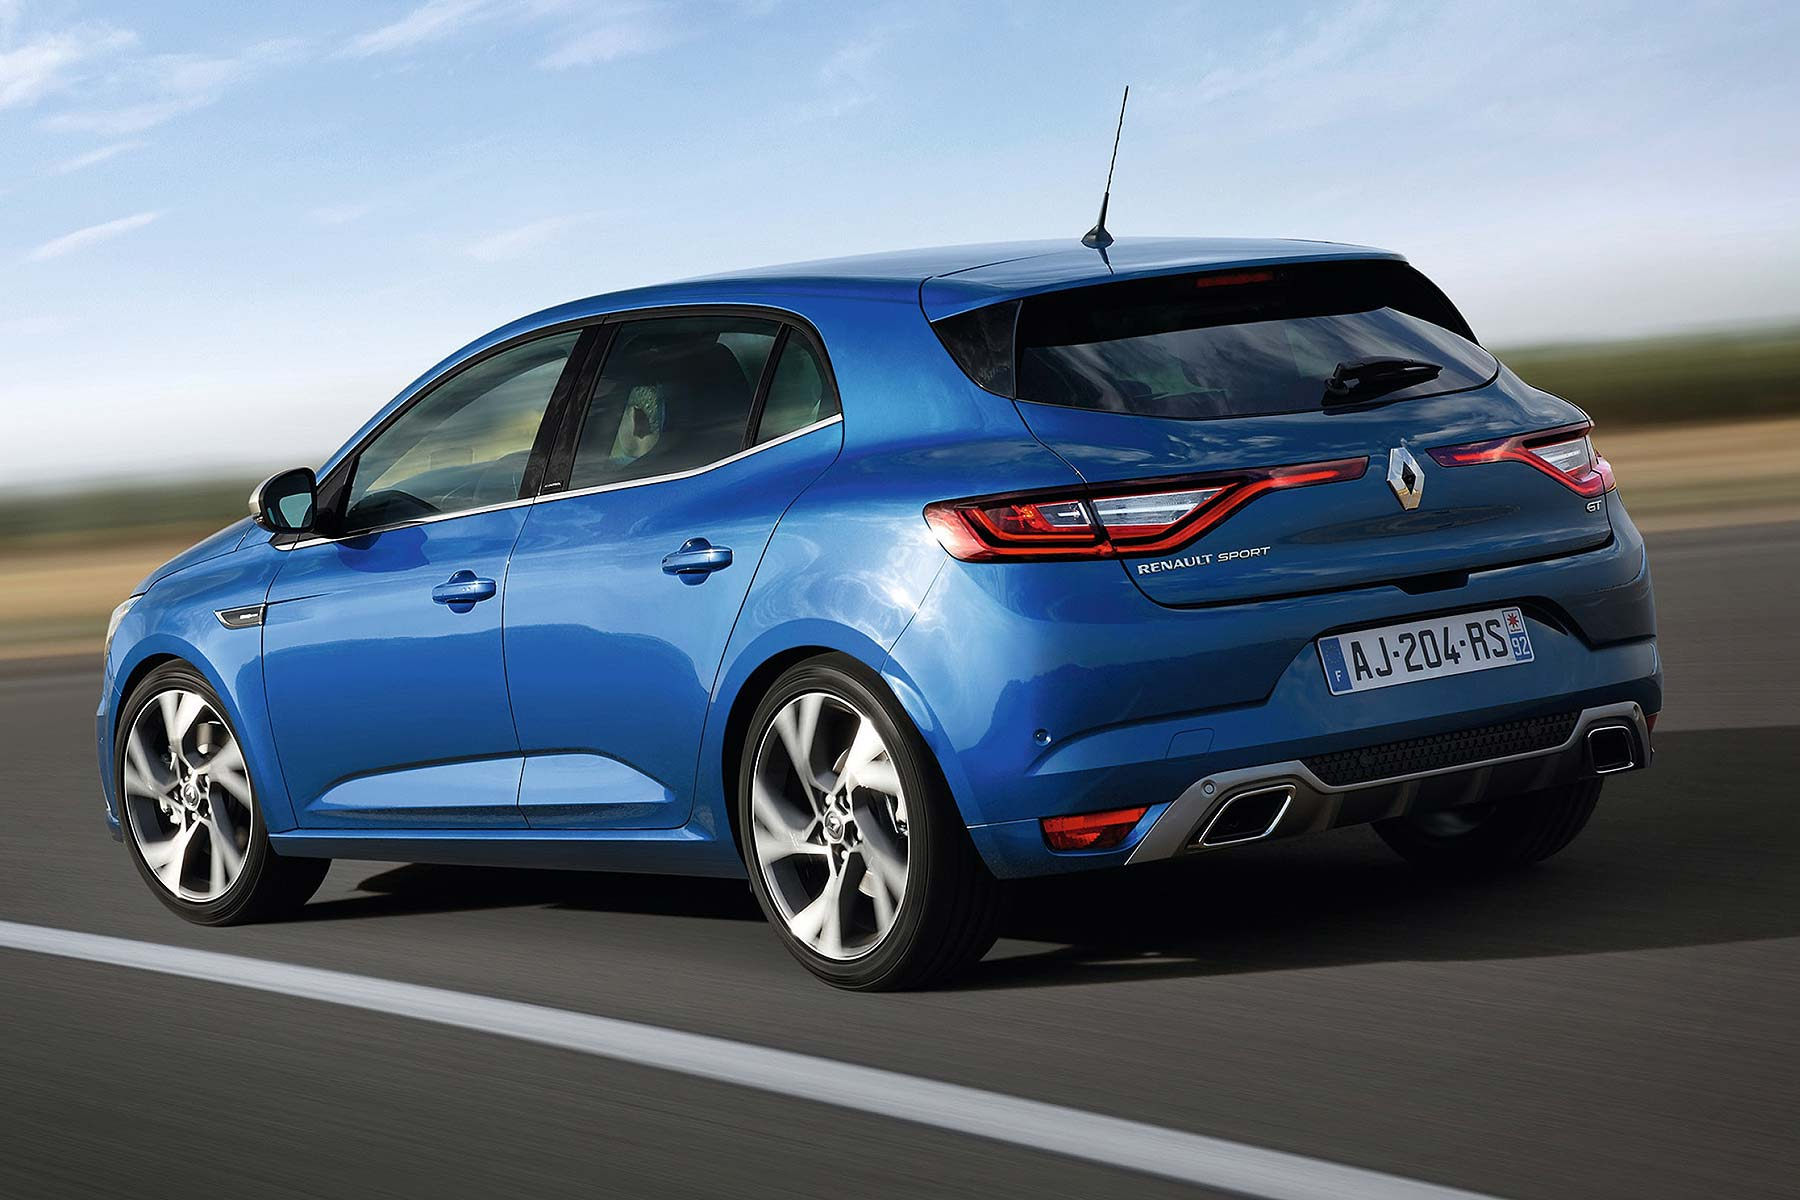 new renault megane prices to start from 16 600 motoring research. Black Bedroom Furniture Sets. Home Design Ideas